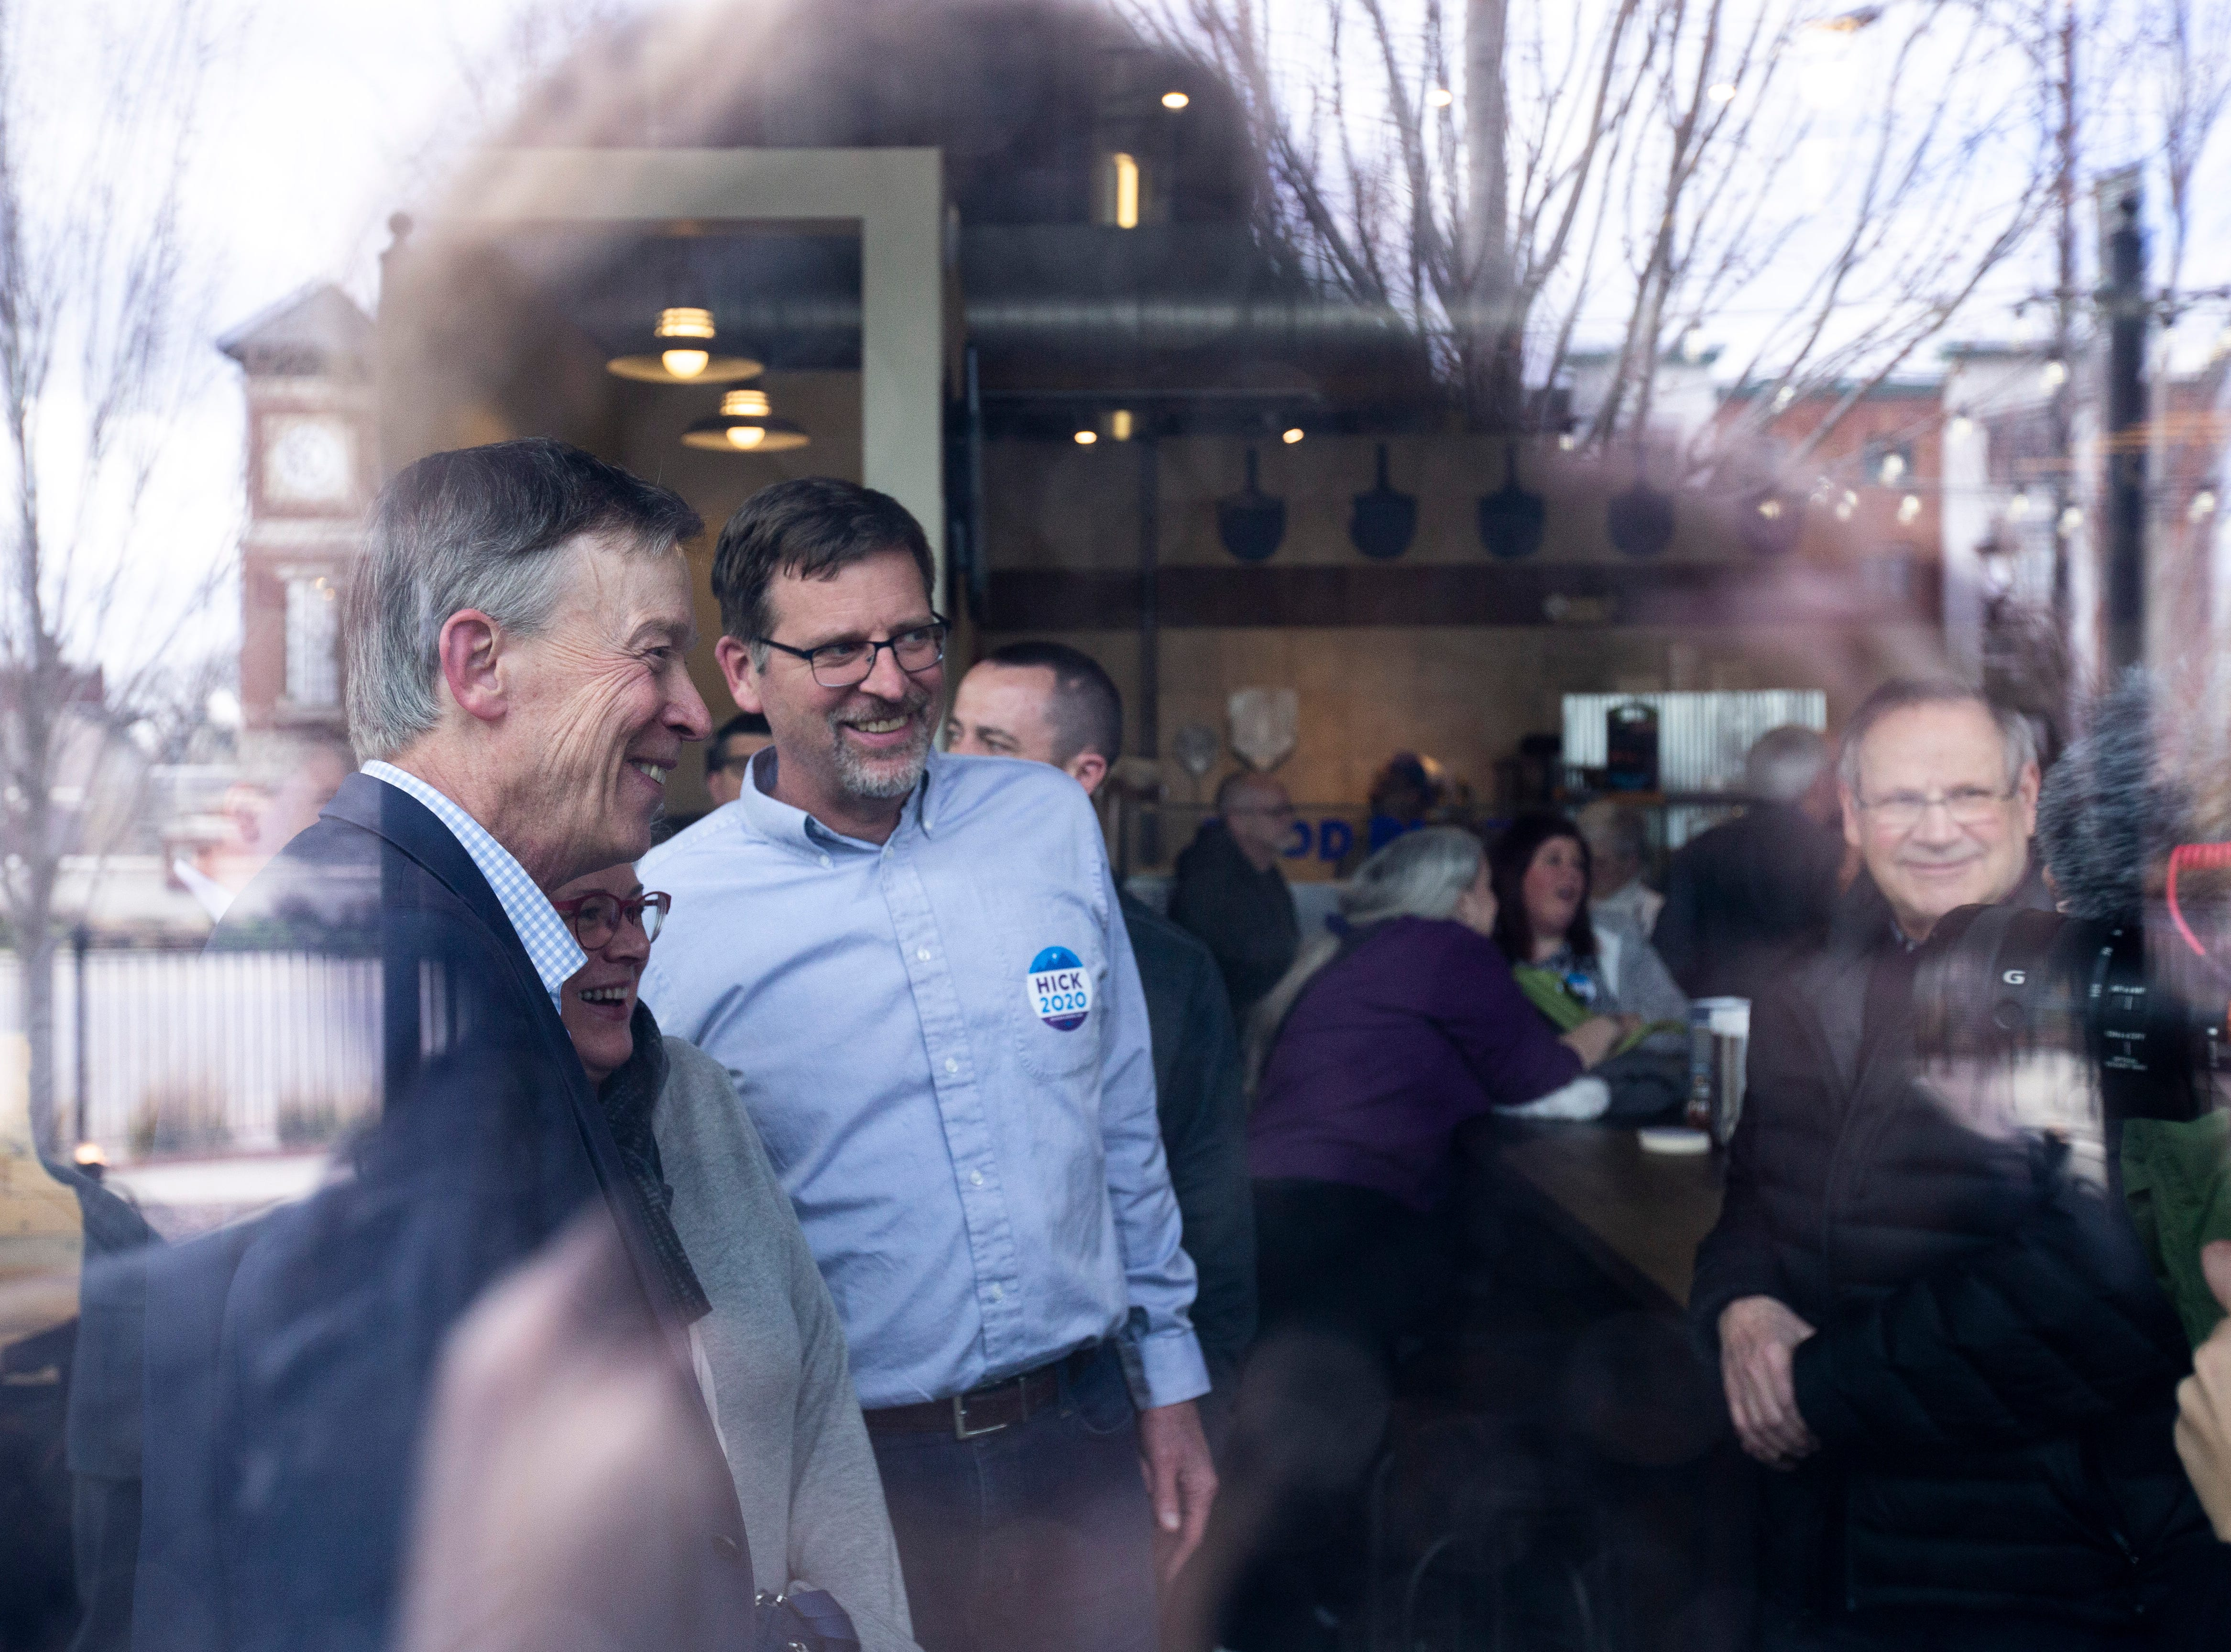 Democratic presidential candidate and former Colorado Gov. John Hickenlooper poses for photos after an event on Friday, April 12, 2019, at Backpocket Brewing in Coralville, Iowa.